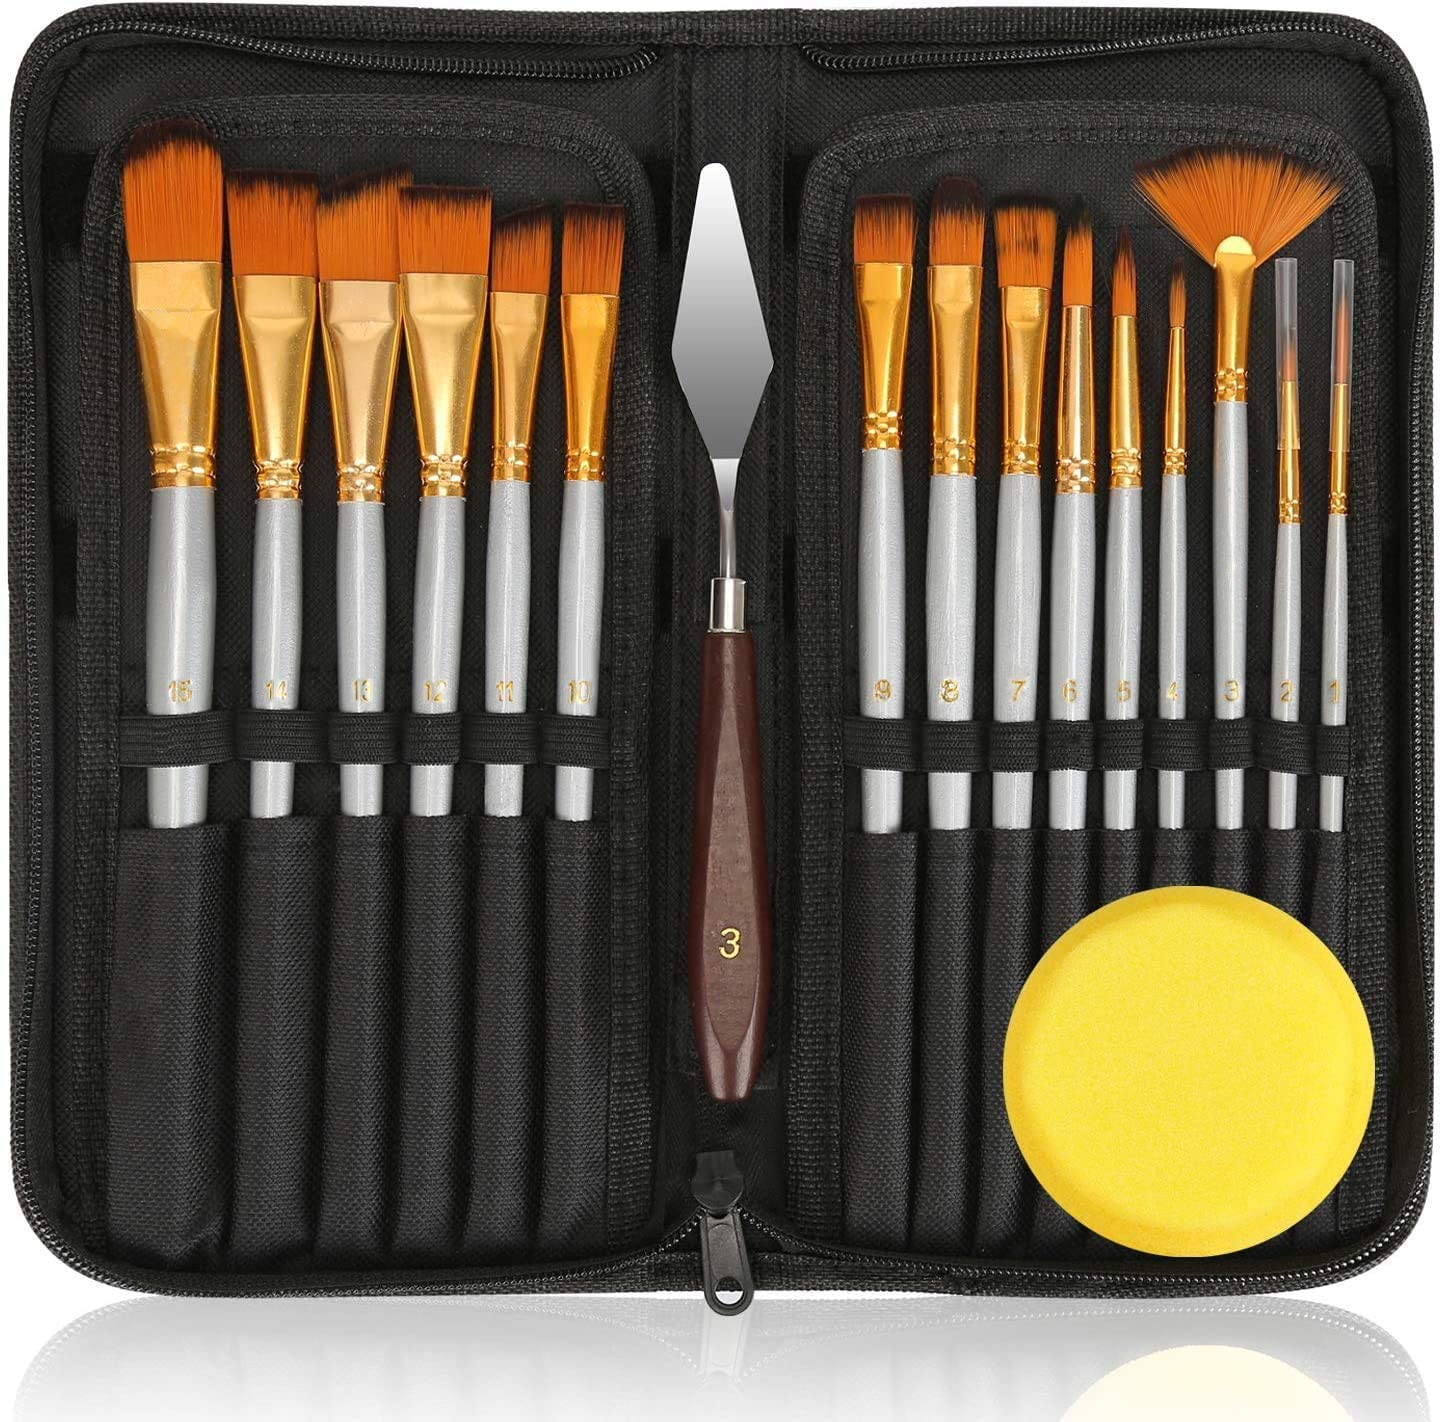 New 15 Pcs Assorted Size Artist Brushes Set Art Craft Artist Painting Brush Set